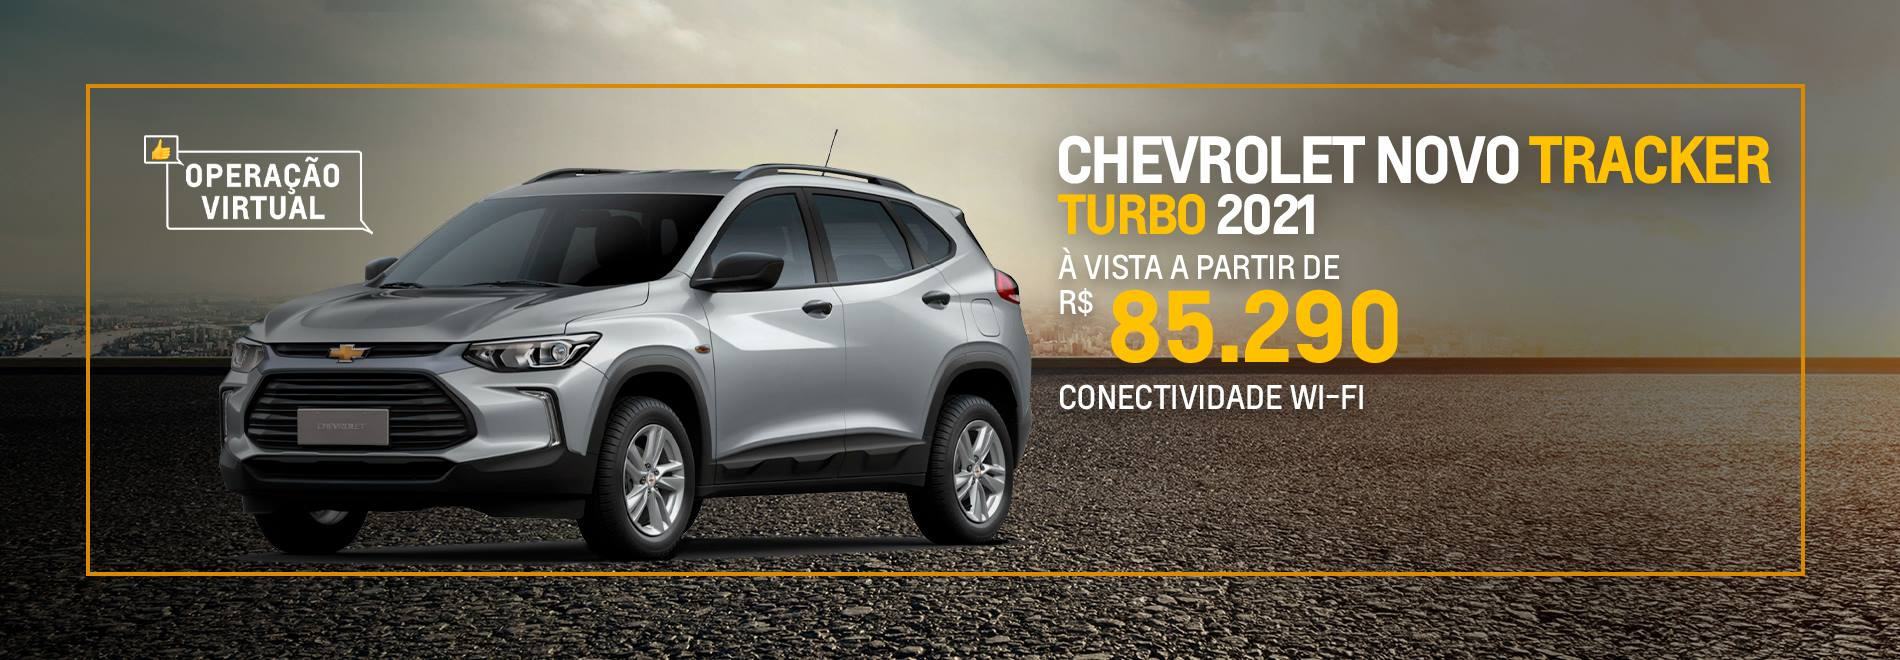 Novo Tracker Turbo 2021